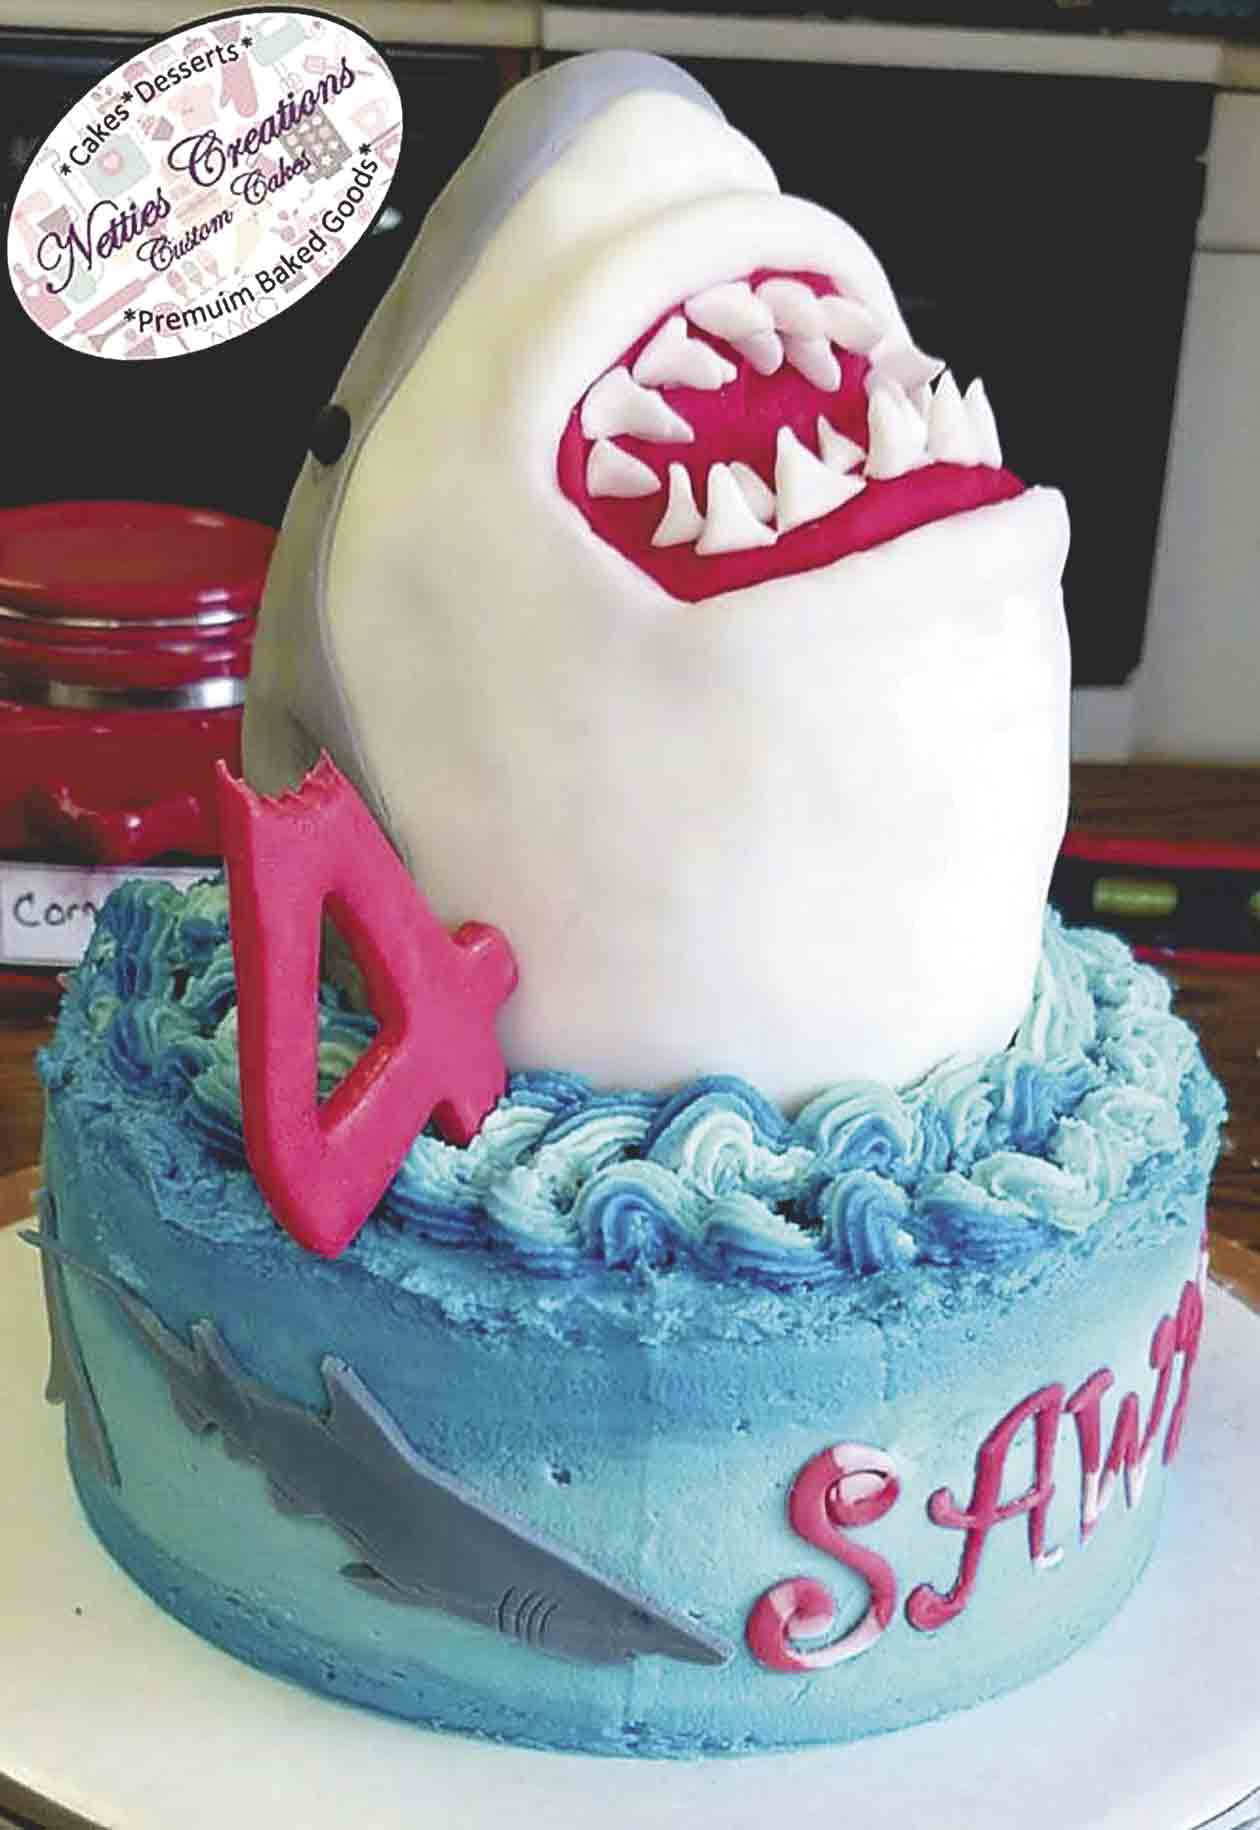 Taking a big bite out of turning 4 years old, this shark-themed birthday cake was baked and decorated by Lynnette Henry of West Union. Under the fondant icing, the shark head is made out of Rice Krispies. (Photo submitted)For Henry, it's icing on the cakeBy Haley...